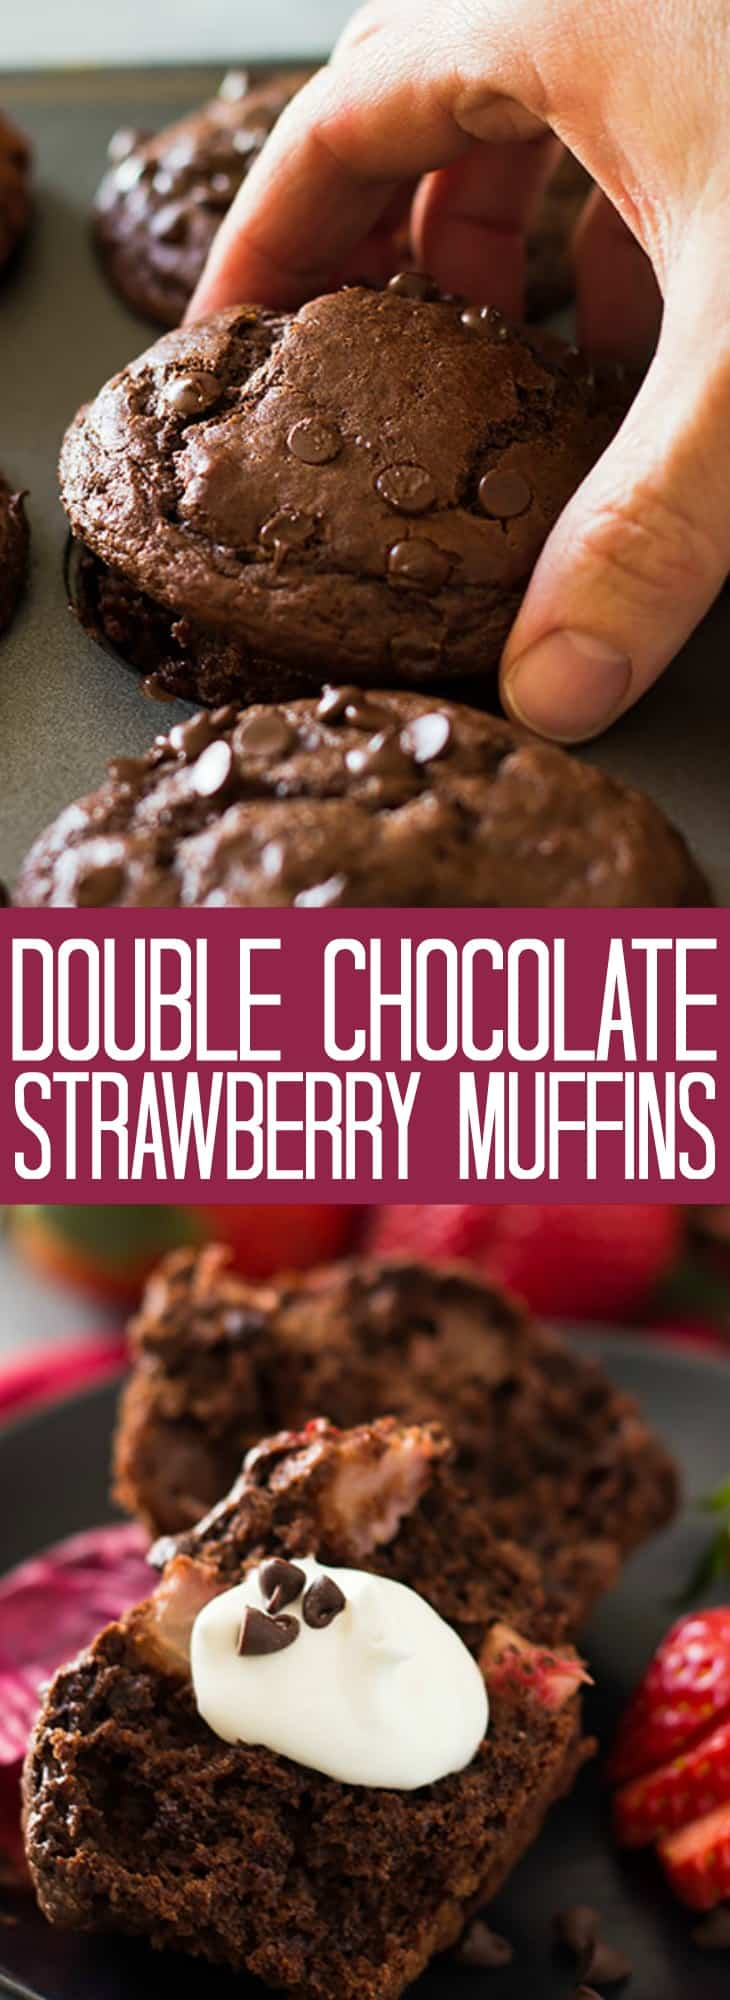 These Double Chocolate Strawberry Muffins are moist, tender, filled with strawberry chunks and oh so chocolatey!   www.countrysidecravings.com